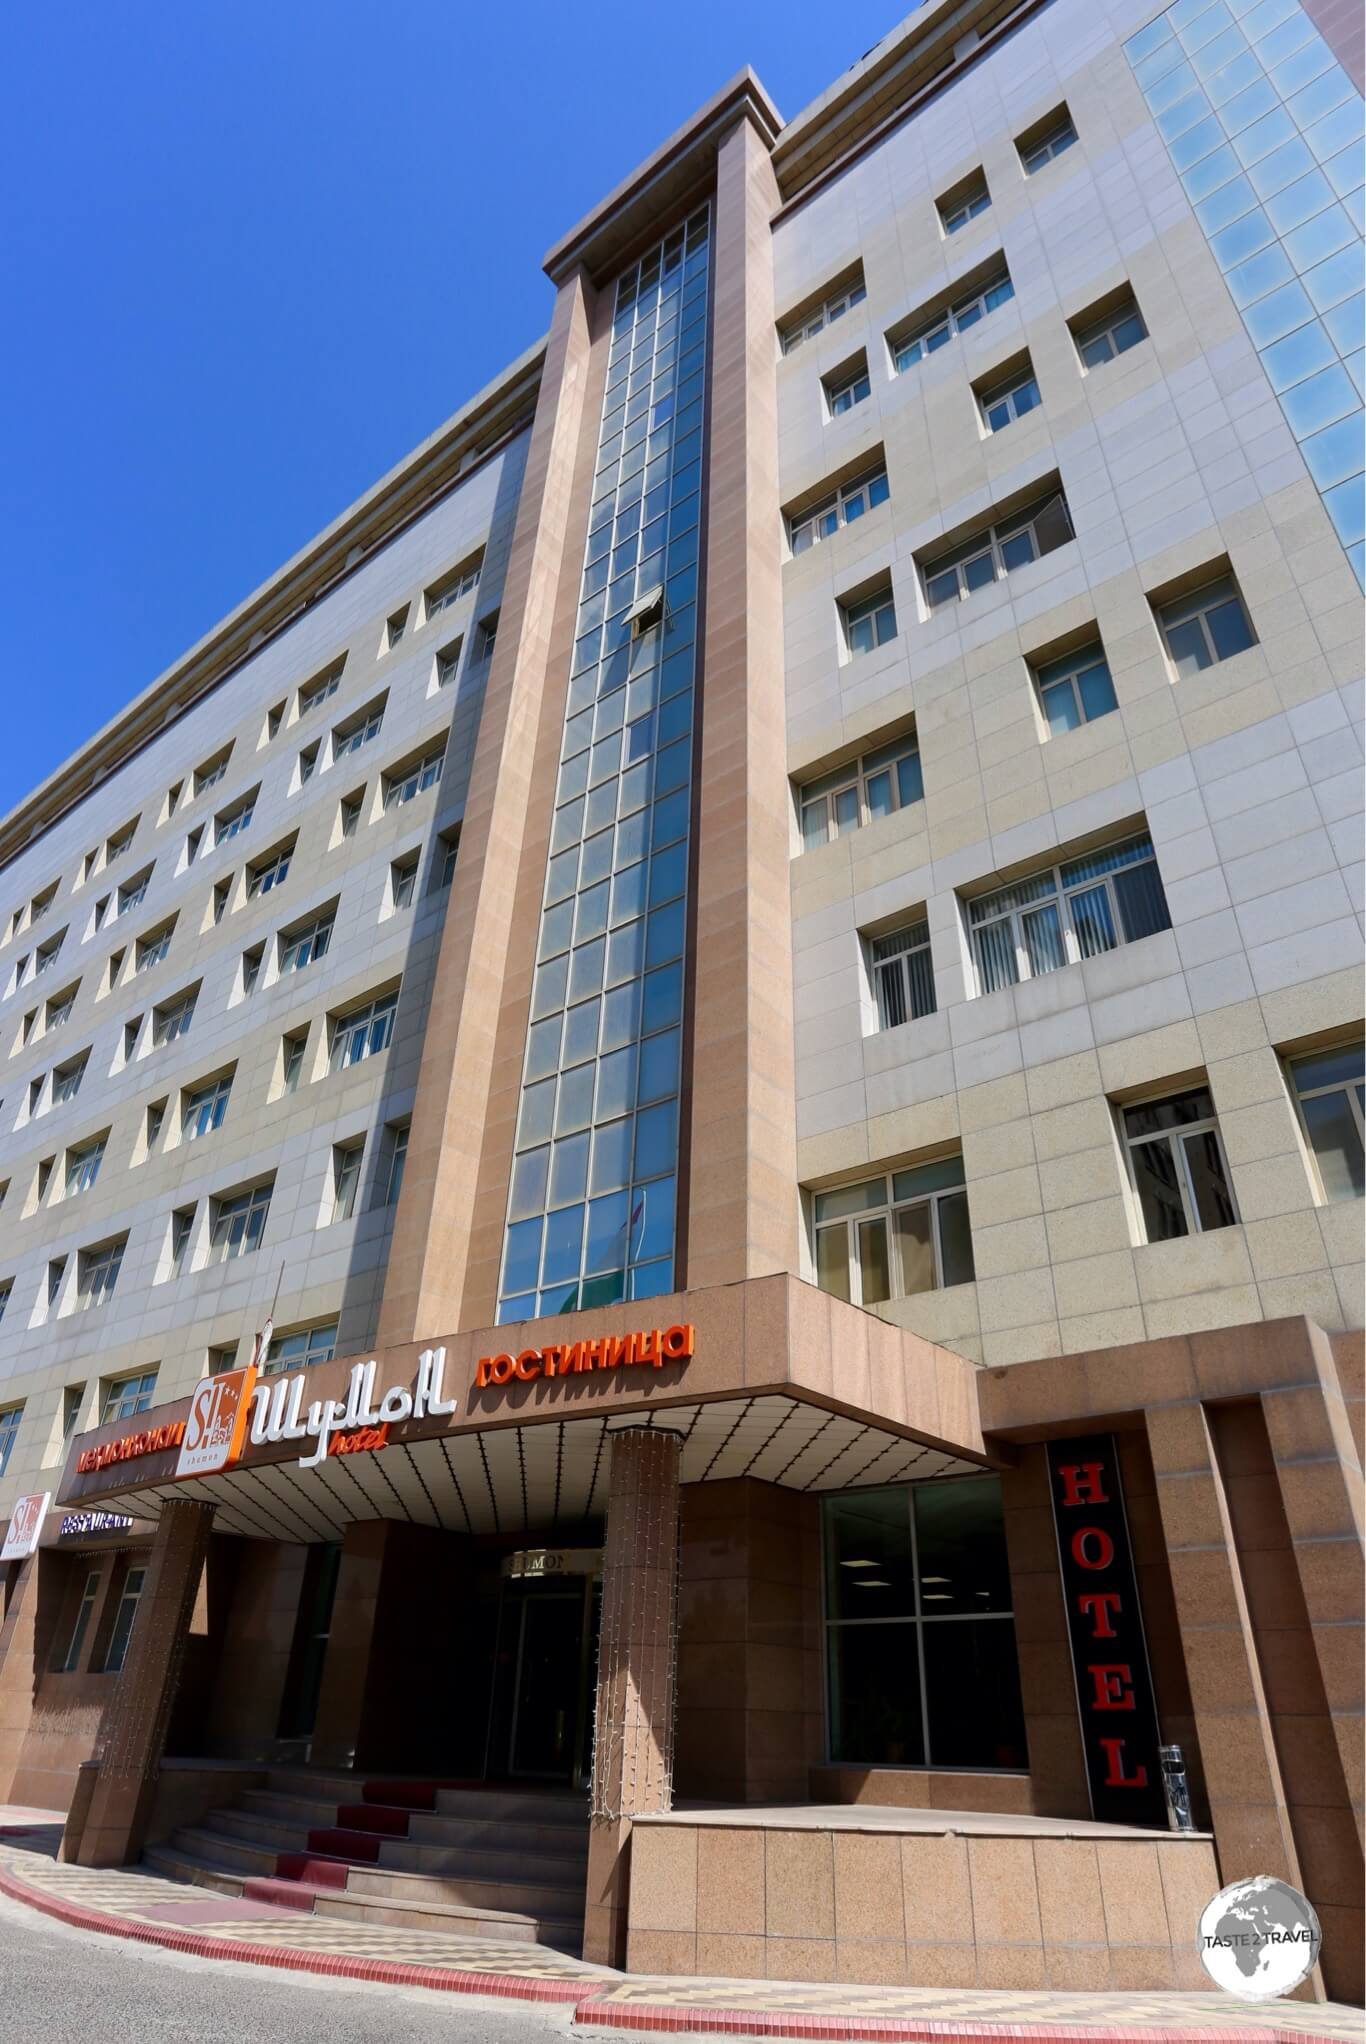 The Shumon hotel in Dushanbe is conveniently located downtown.